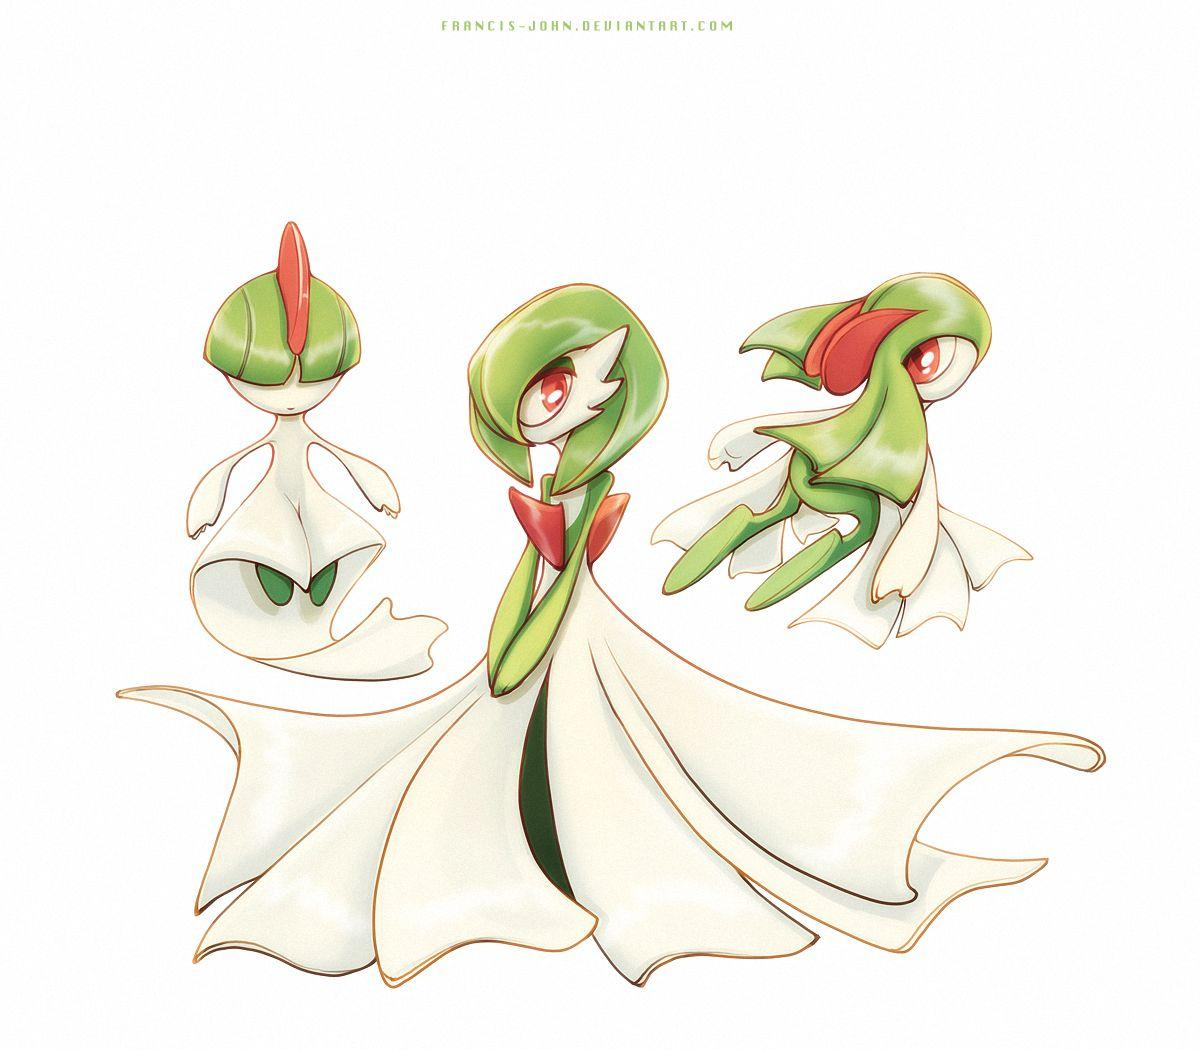 Ralts Gardevoir and Kirlia by francis-john on DeviantArt